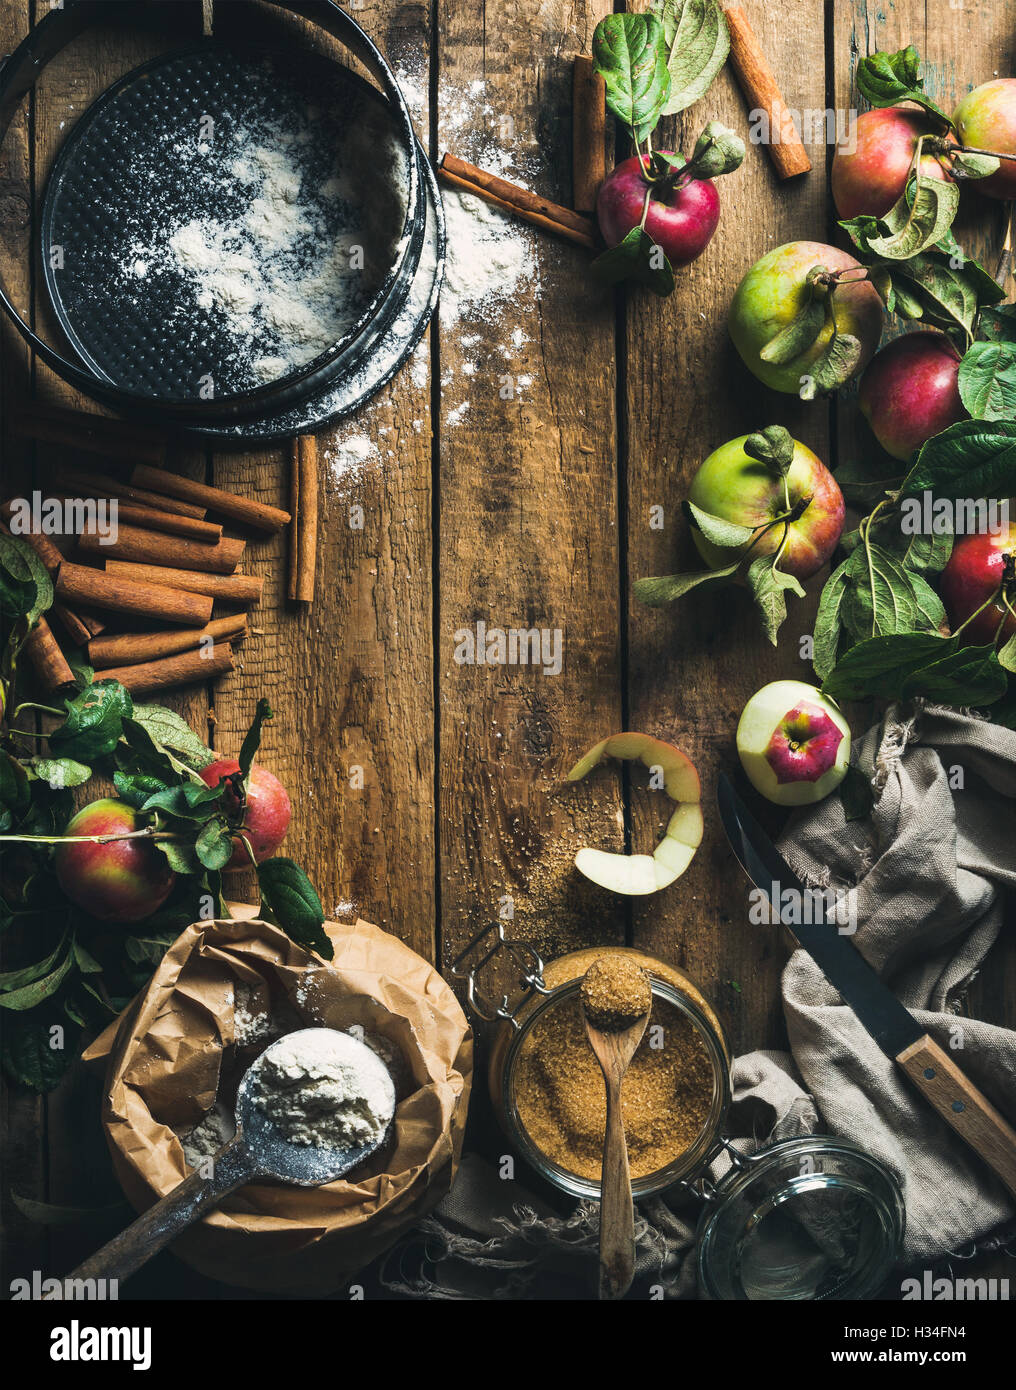 Ingredients for cooking apple pie over rustic wooden background - Stock Image